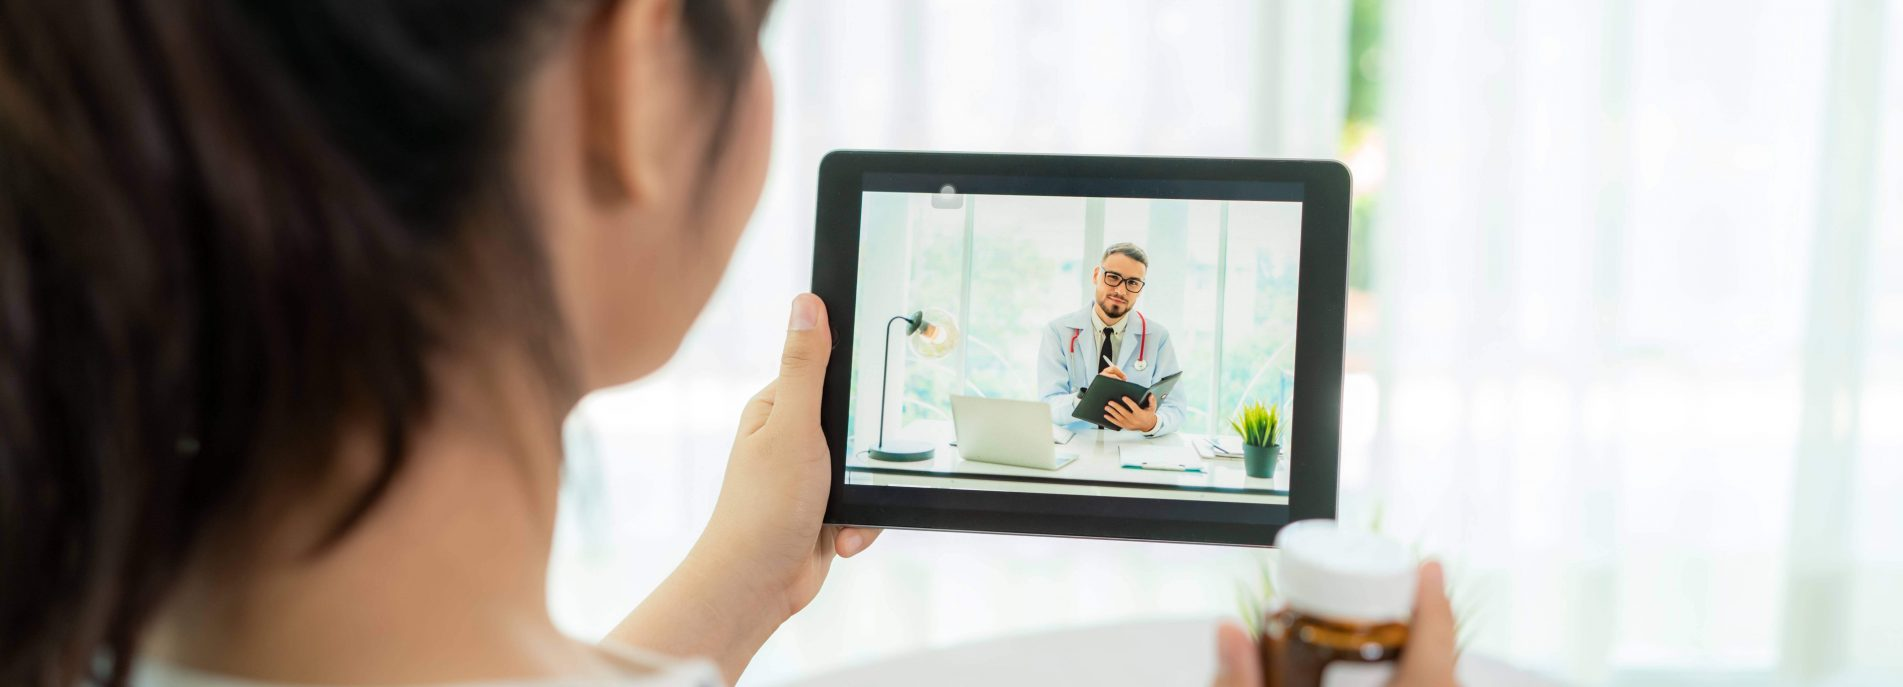 telehealth benefits and challenges